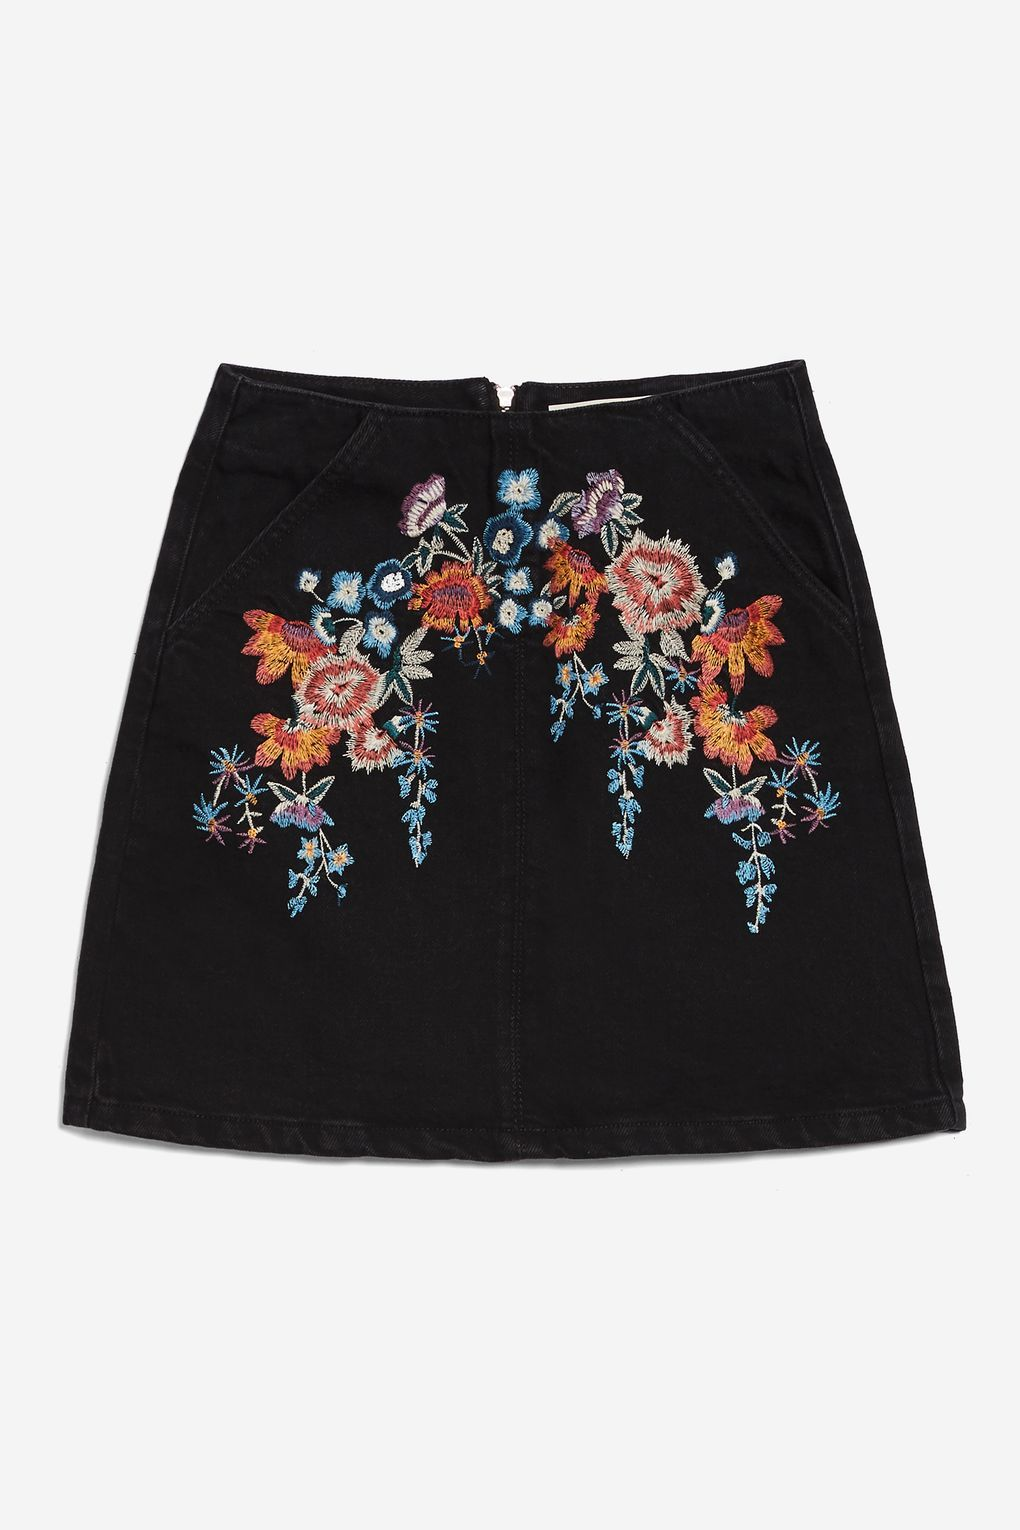 84b25bbbb5 MOTO Bright Floral Denim A-Line Skirt - New In Fashion - New In - Topshop  USA